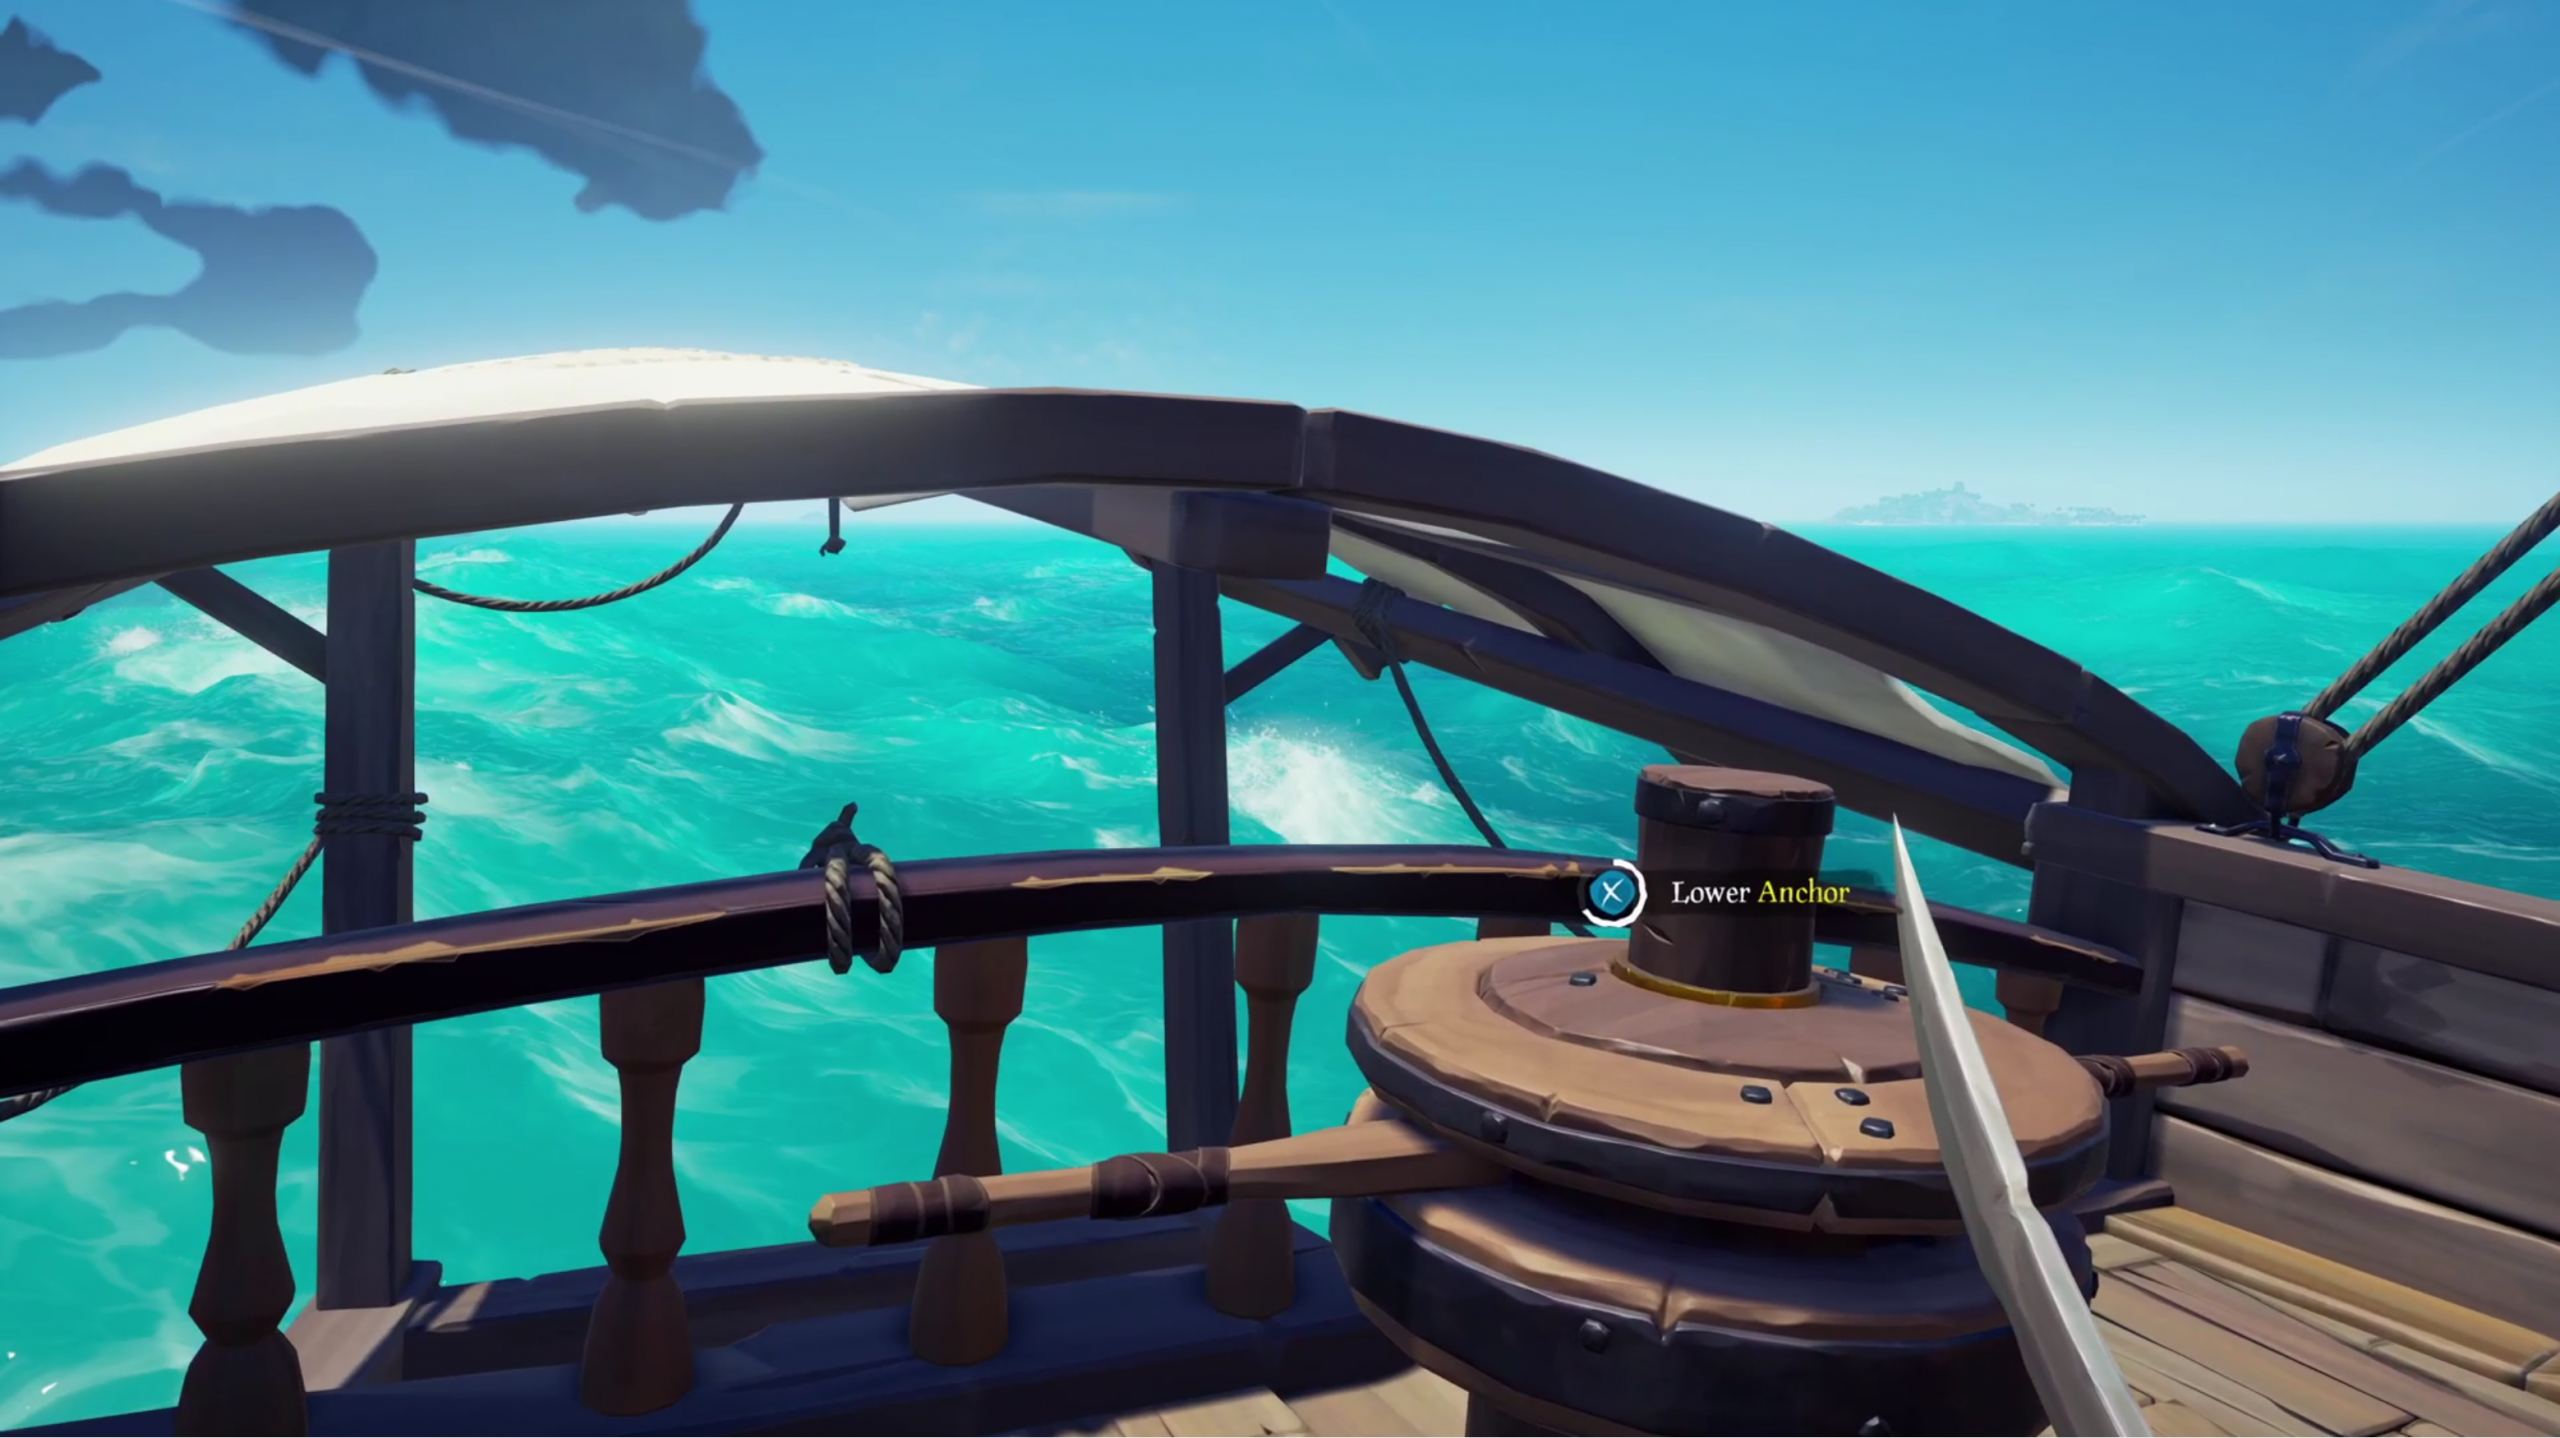 Screenshot showing an anchor mechanism on . ship deck with rolling sea behind.